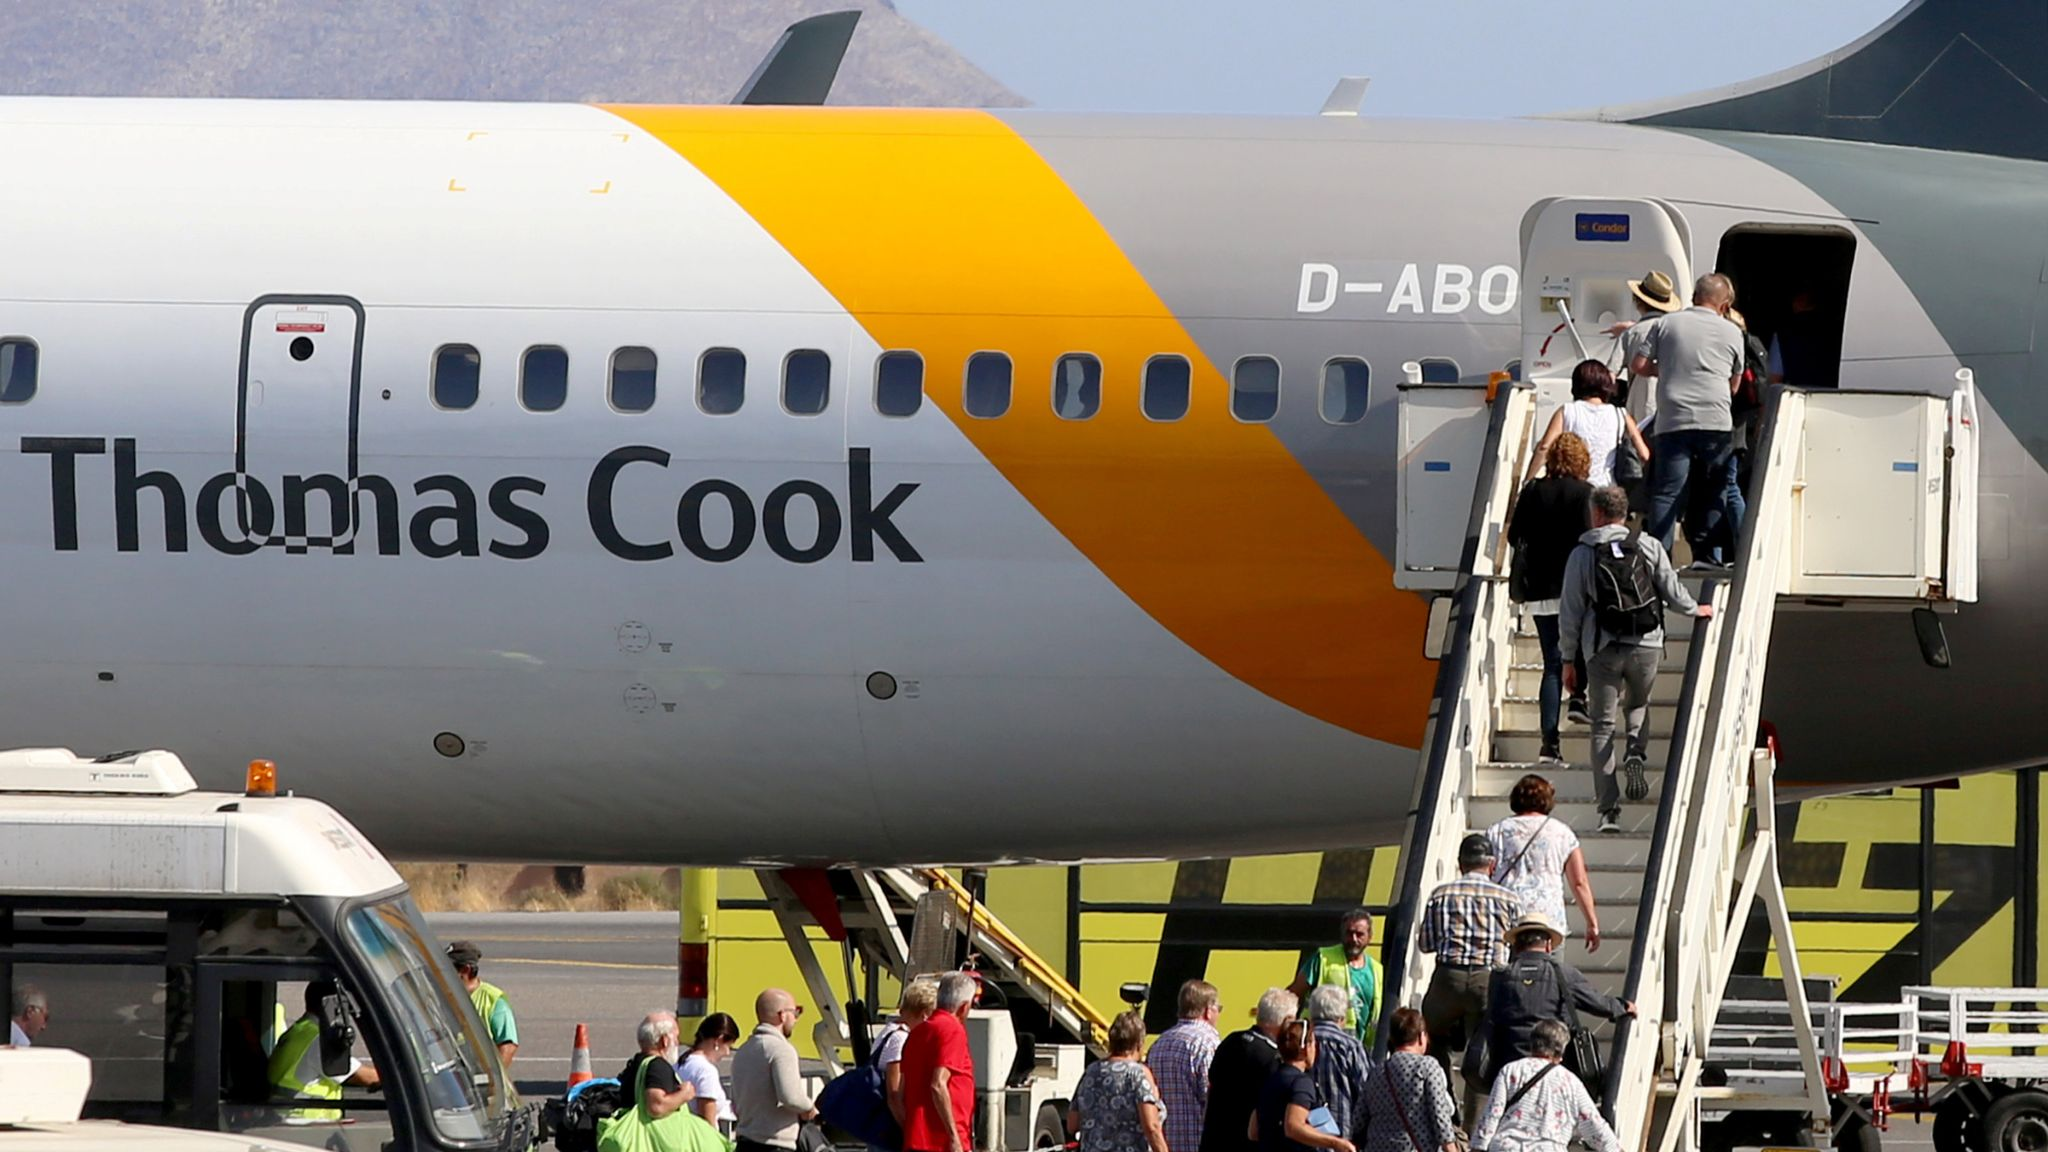 Thomas Cook customers uninsured for death, serious injury and illness